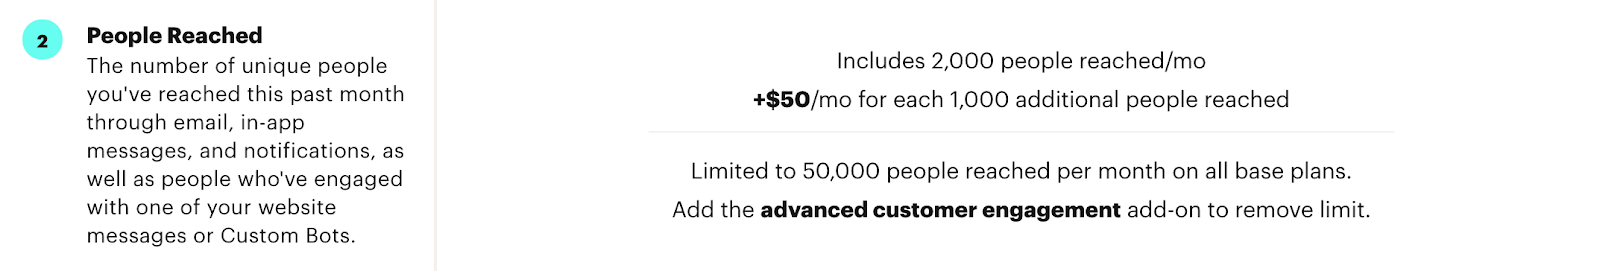 Intercom pricing and the people reached